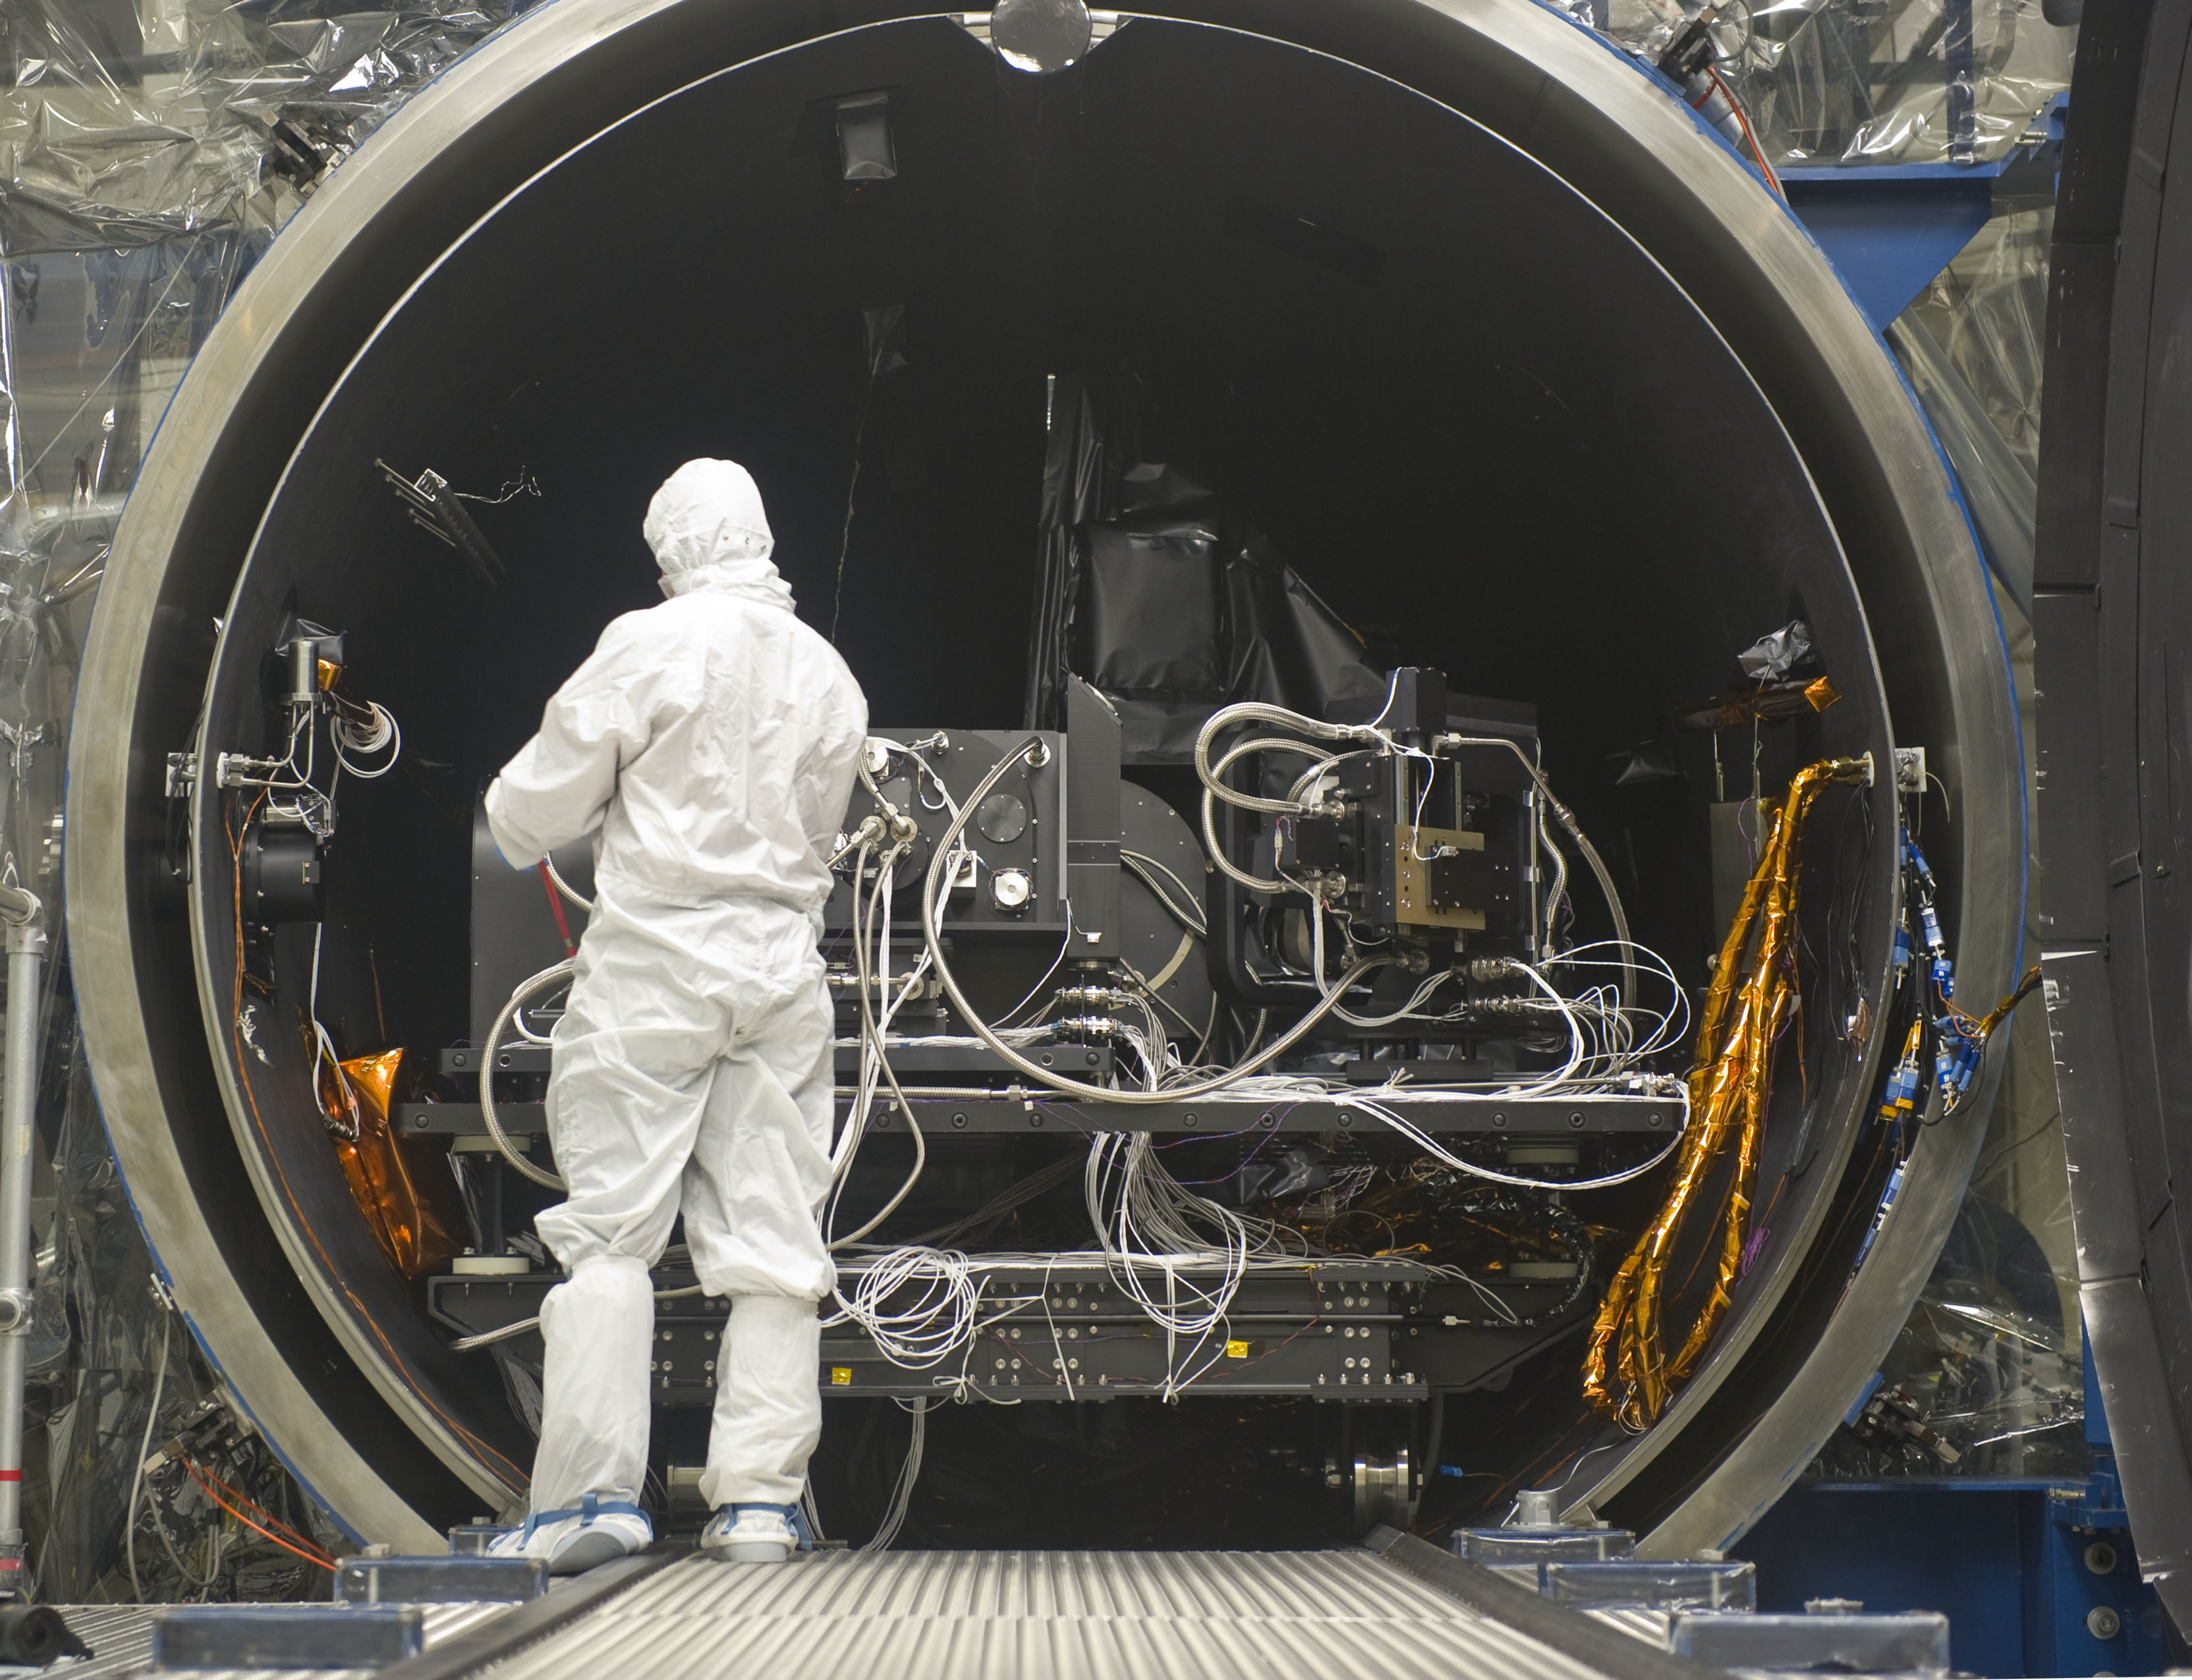 Building Test Instruments : Landsat s tirs instrument comes out of first round